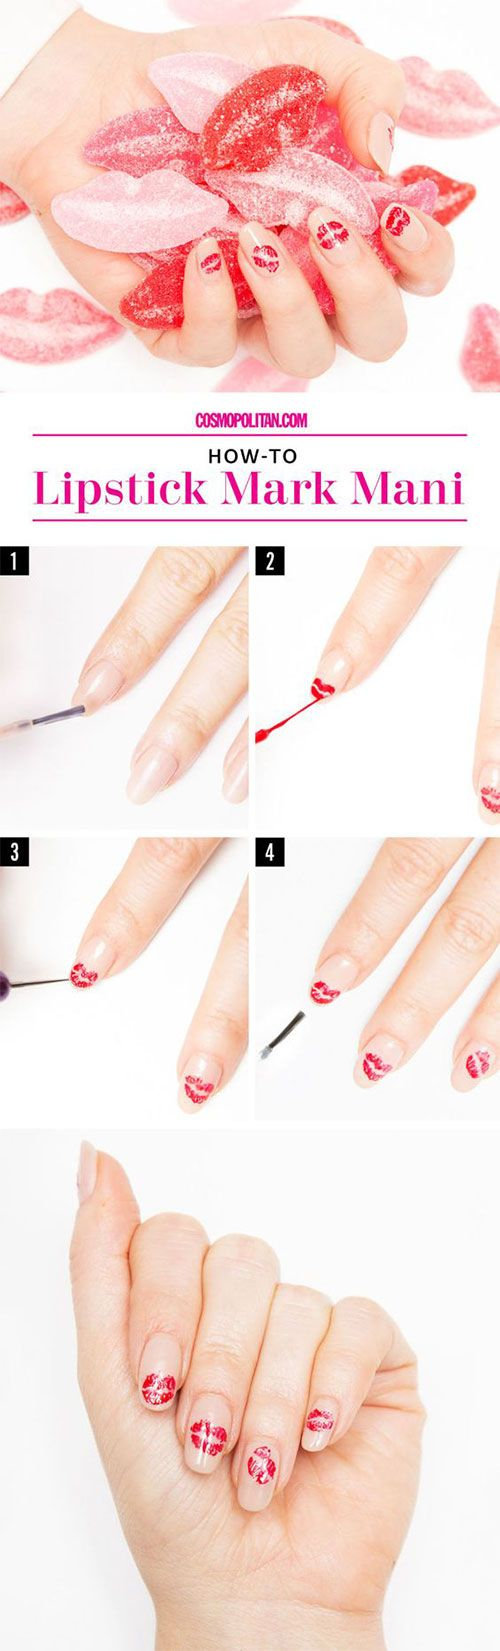 26 best Great Nails, Ghoul-Friend! images on Pinterest | Halloween ...